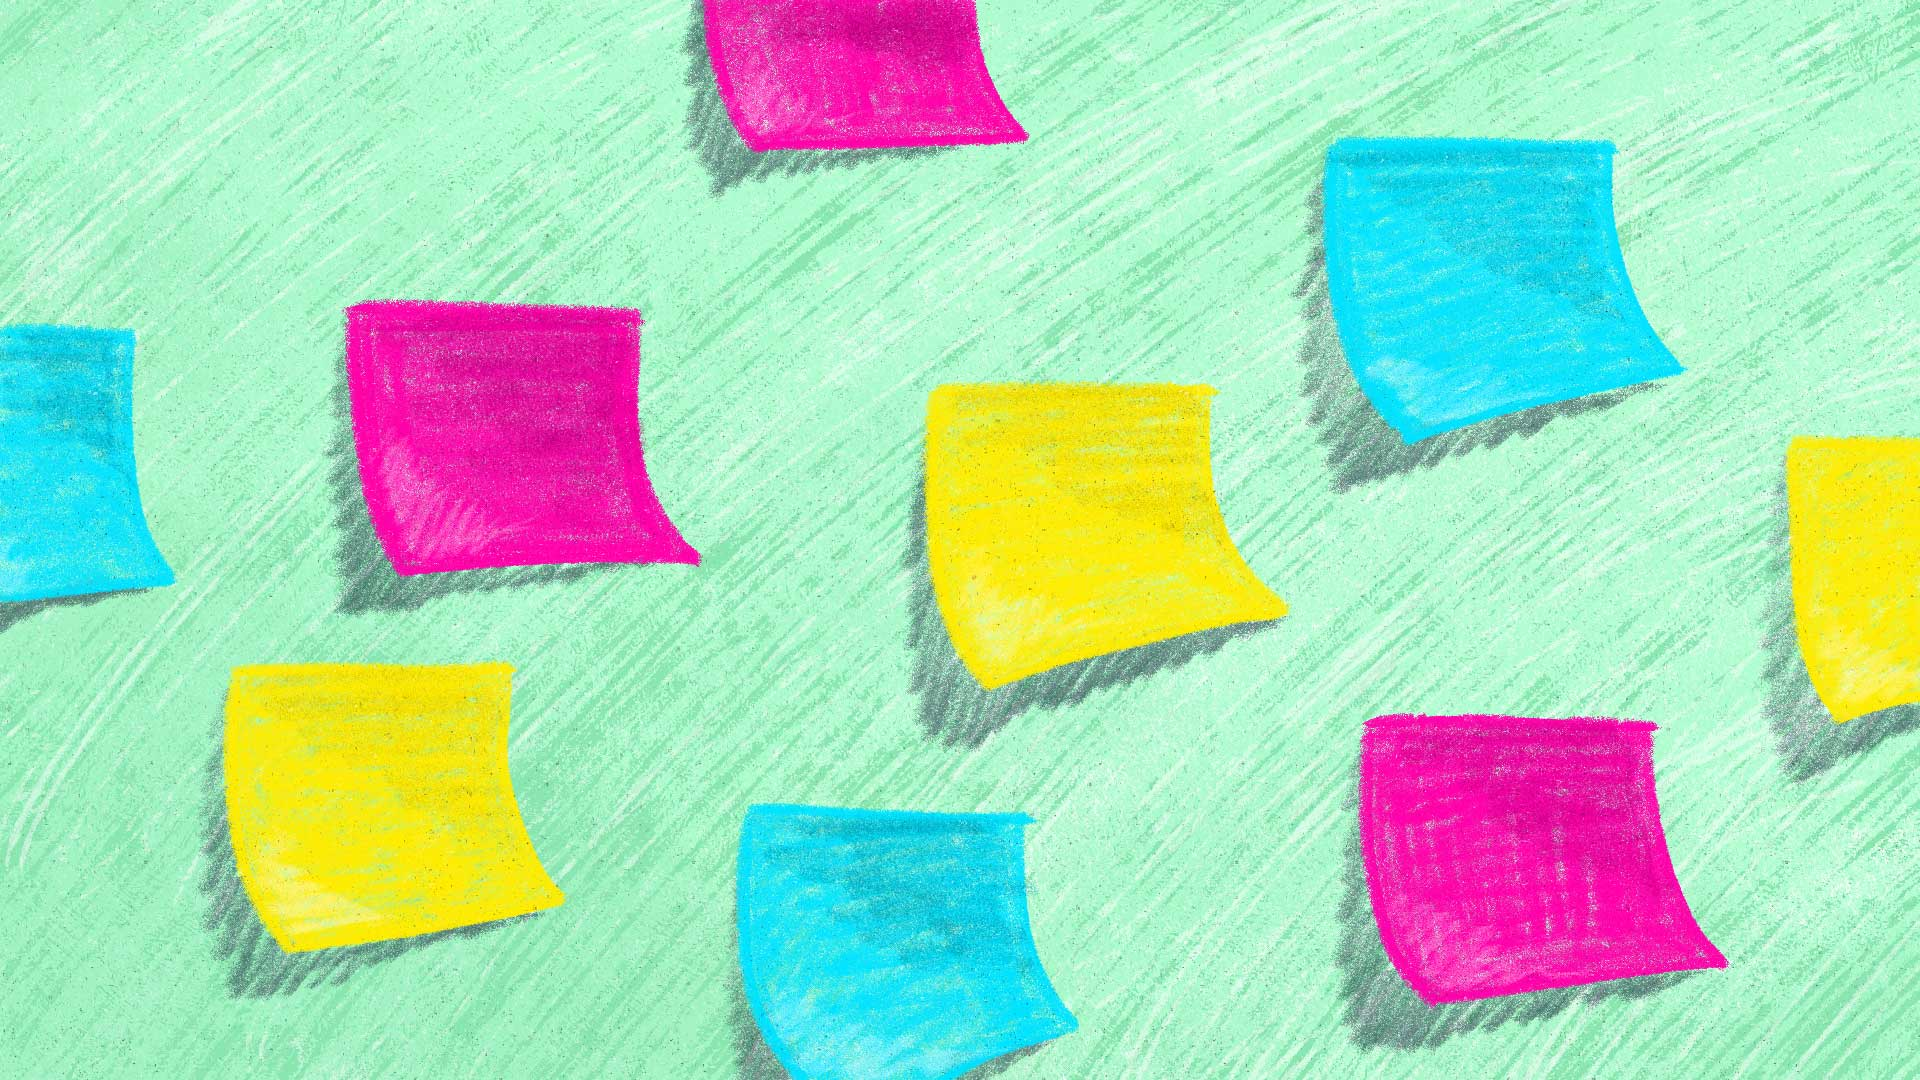 Colorful post-it notes are stuck to a whiteboard, like lots of planning is in progress.